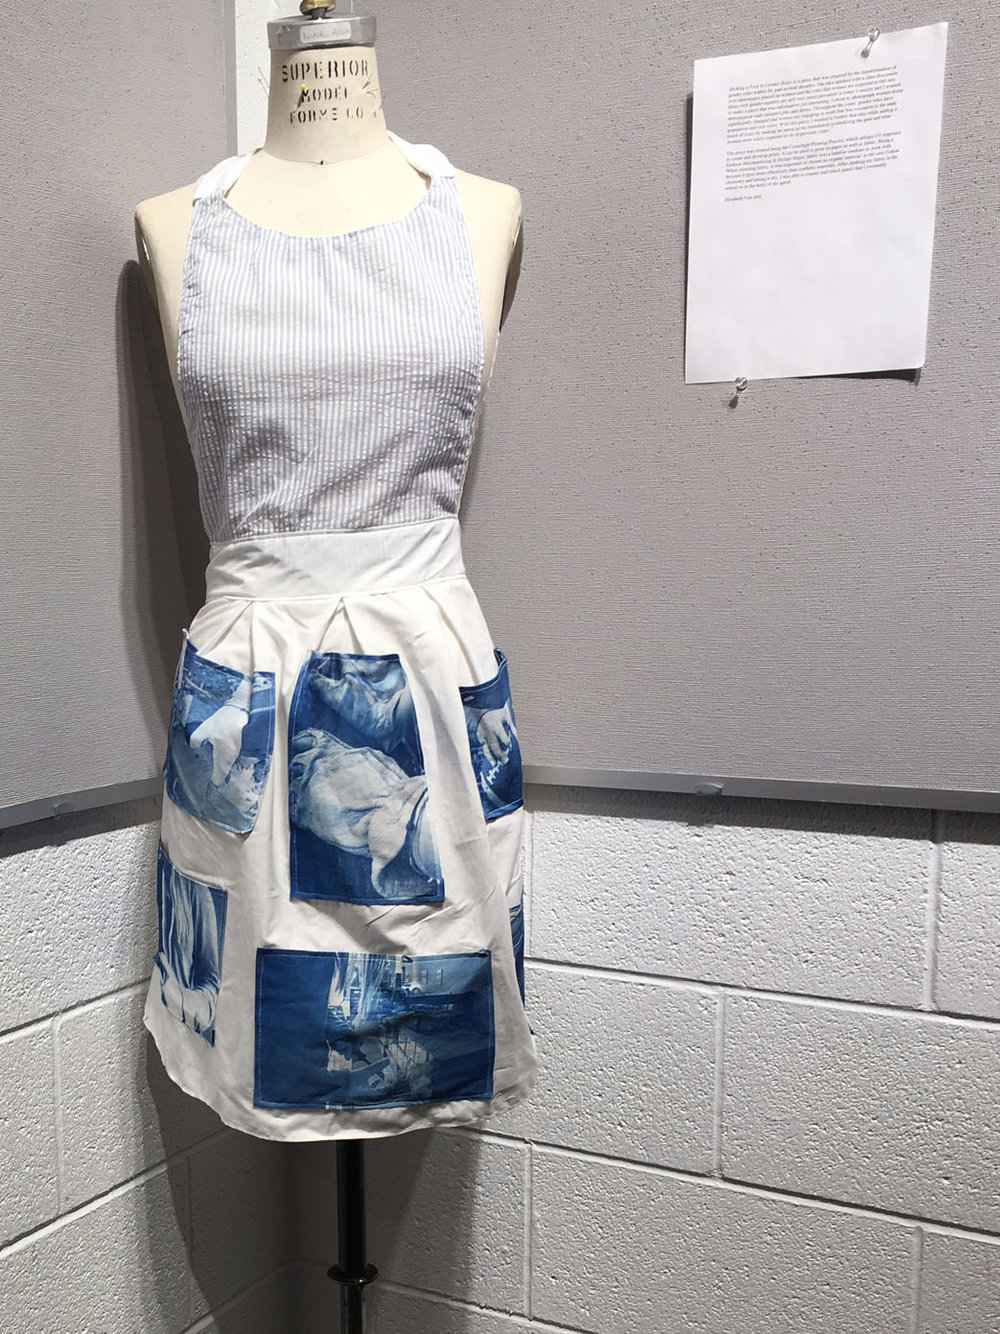 CMU Fall 2016, cyanotype on fabric, Alternative Photographic Processes, Final Project. Students spend several weeks exploring a self-assigned concept of their choosing. They submit 5 prints with exhibition ready presentation.